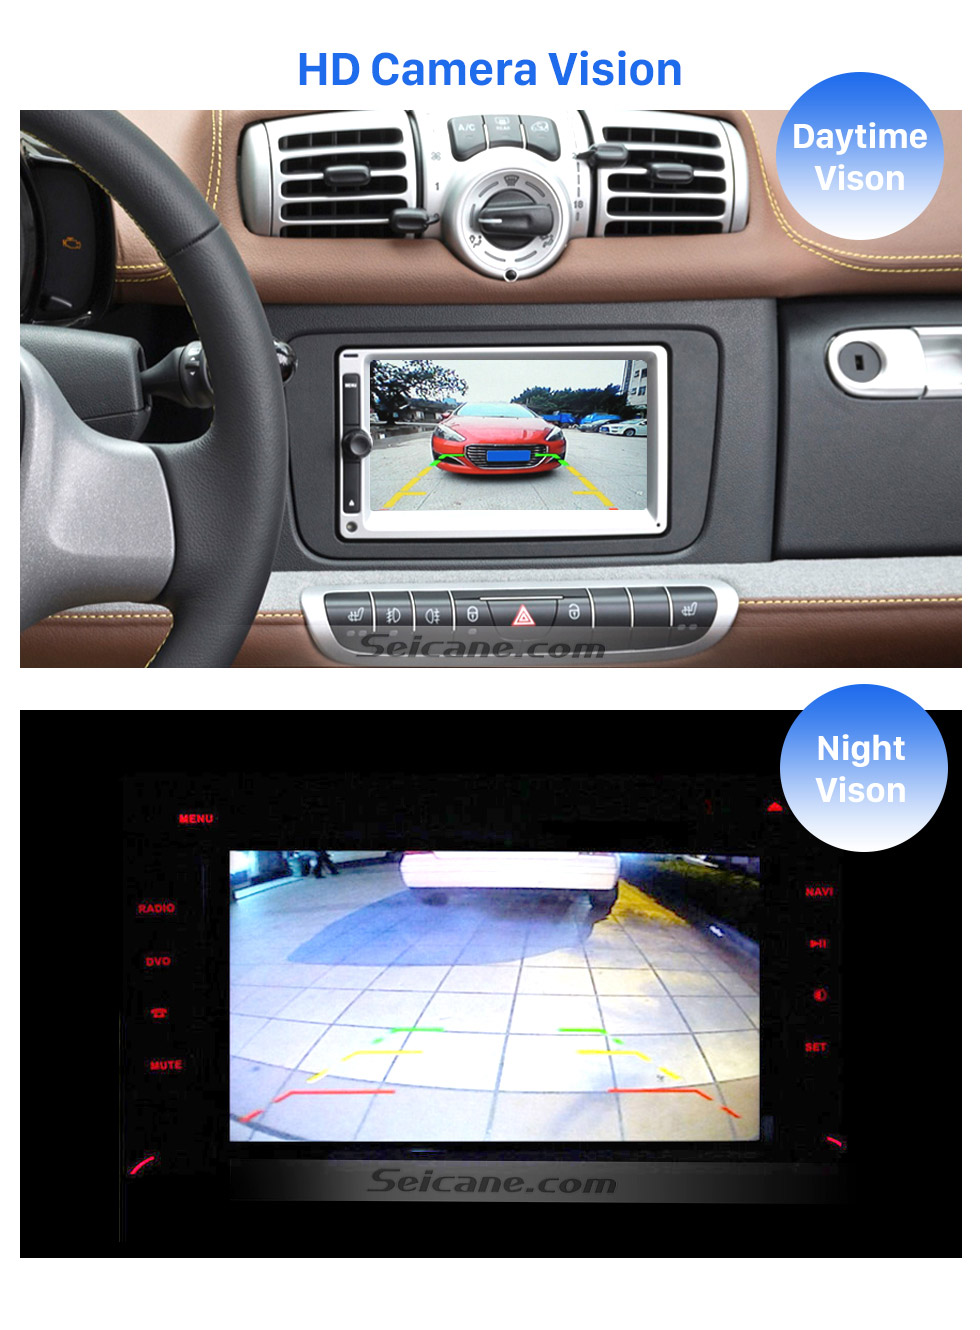 HD Camera Vision HD SONY CCD 600 TV Lines Wired Car Parking Backup Reversing Camera for 2008-2013 Mercedes-Benz SMART Waterproof Night Vision free shipping